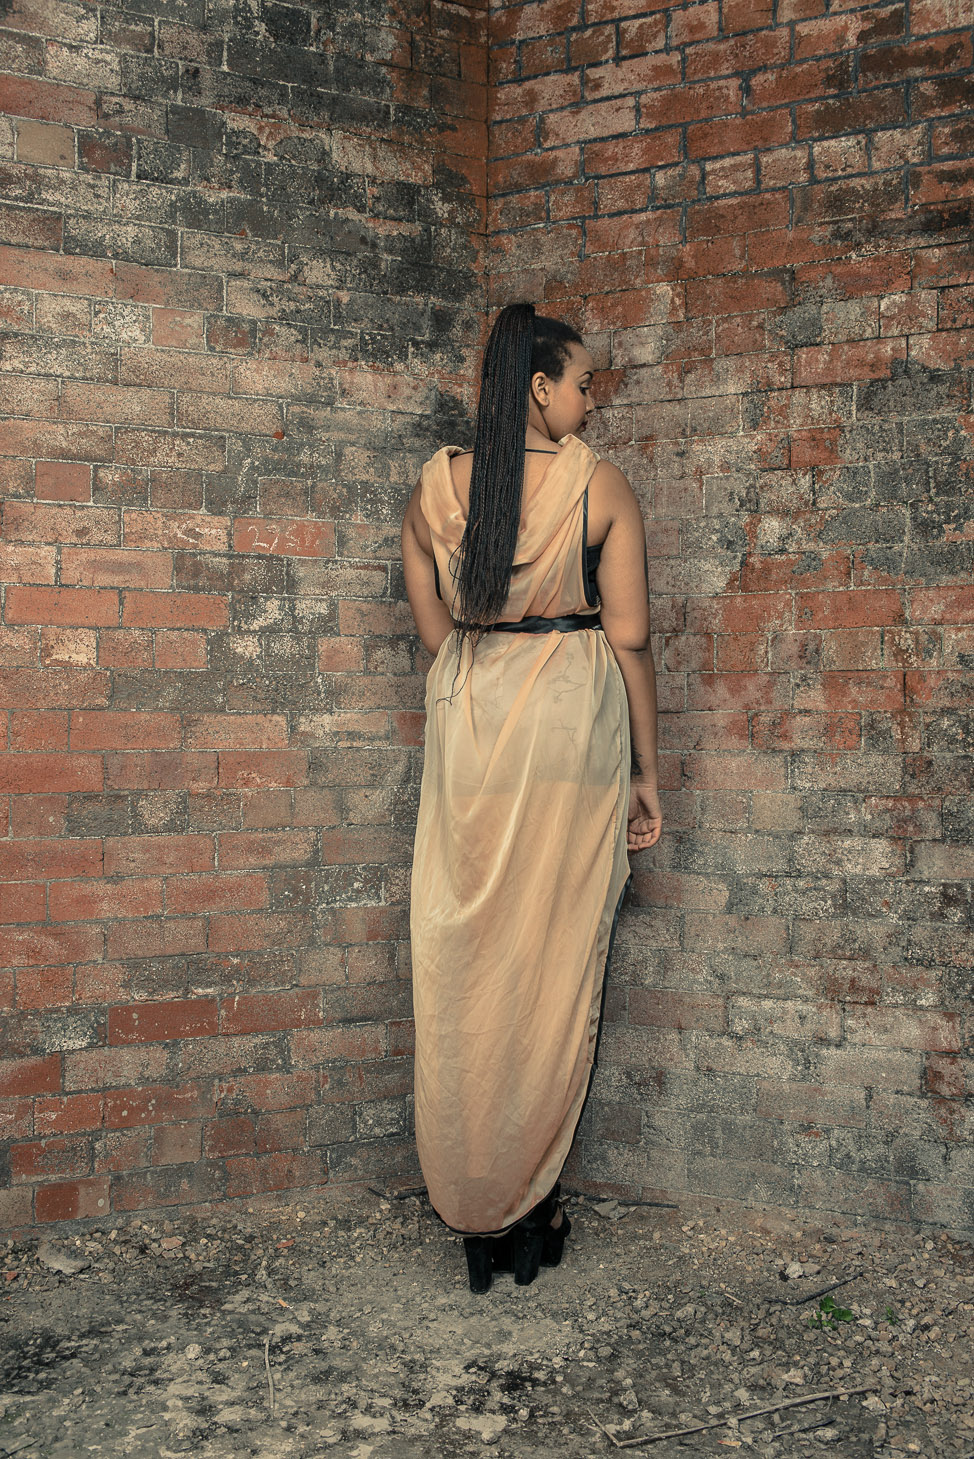 zaramia-ava-zaramiaava-leeds-fashion-designer-ethical-sustainable-tailored-minimalist-sheer-versatile-drape-dress-gold-binding-belt-wrap-cowl-styling-bodysuit-womenswear-models-photoshoot-location-5